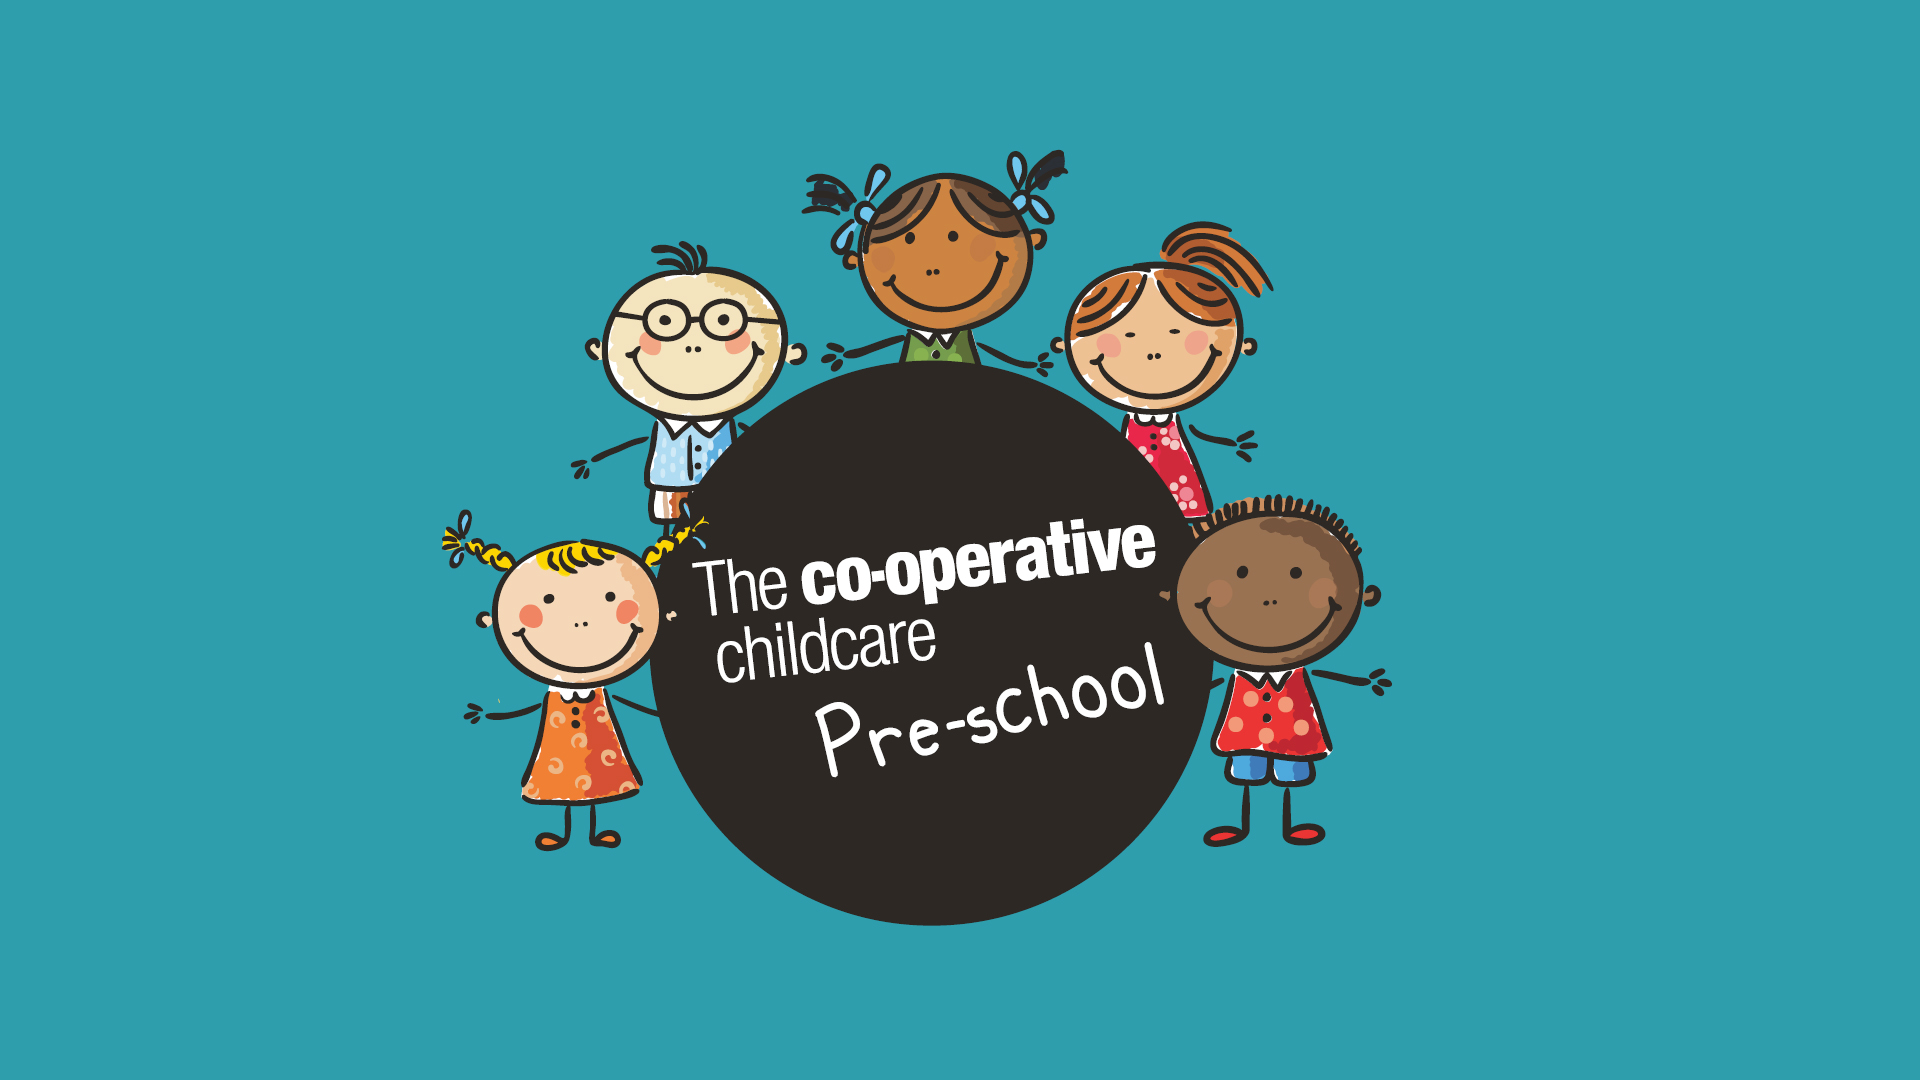 Co-operative animation